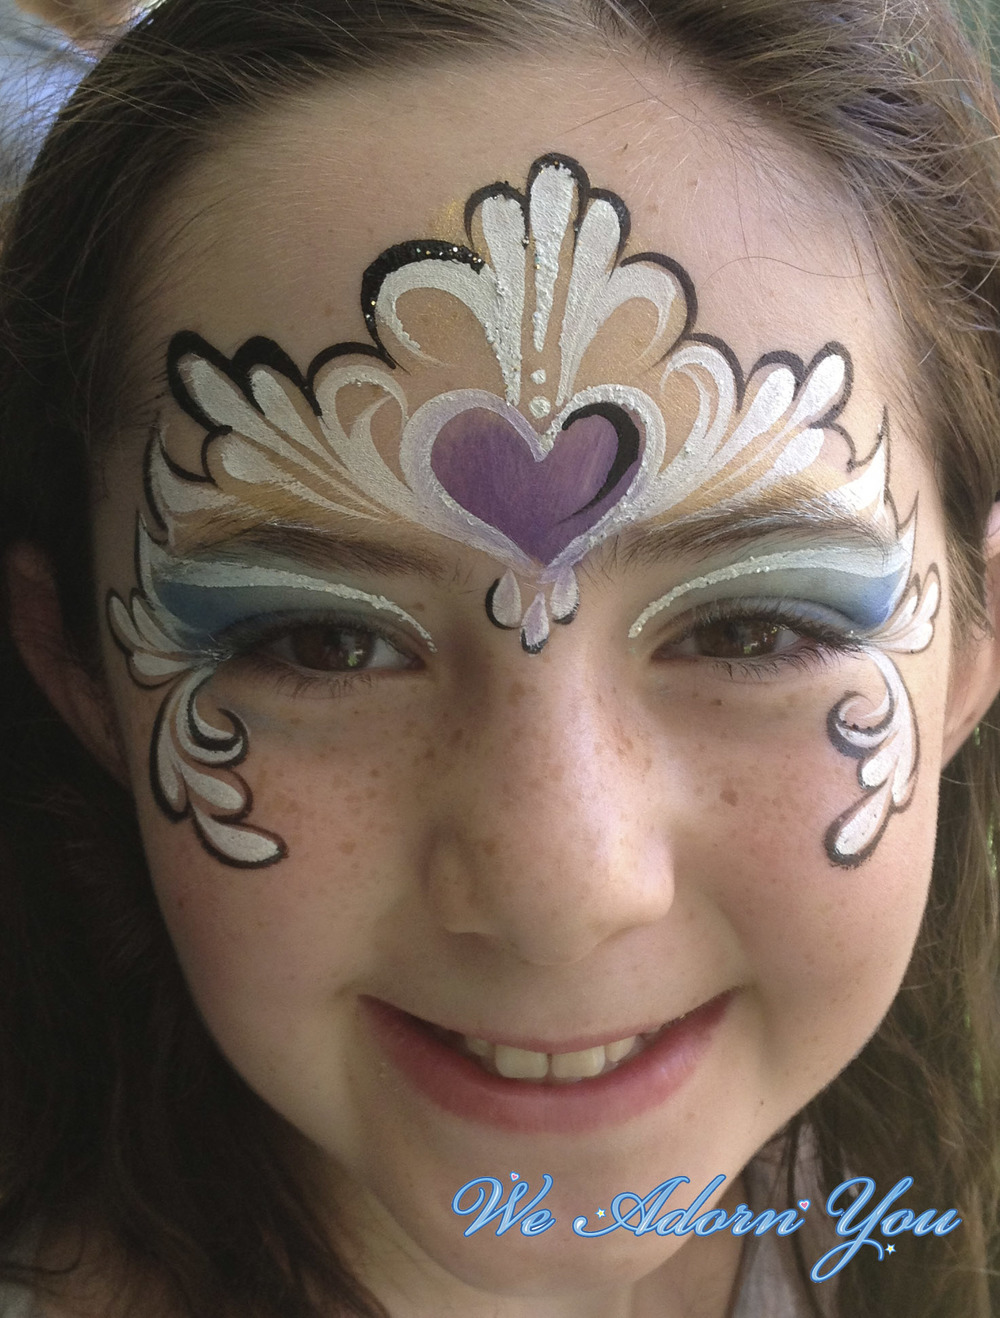 Face Painting Heart Princess - We Adorn You.jpg